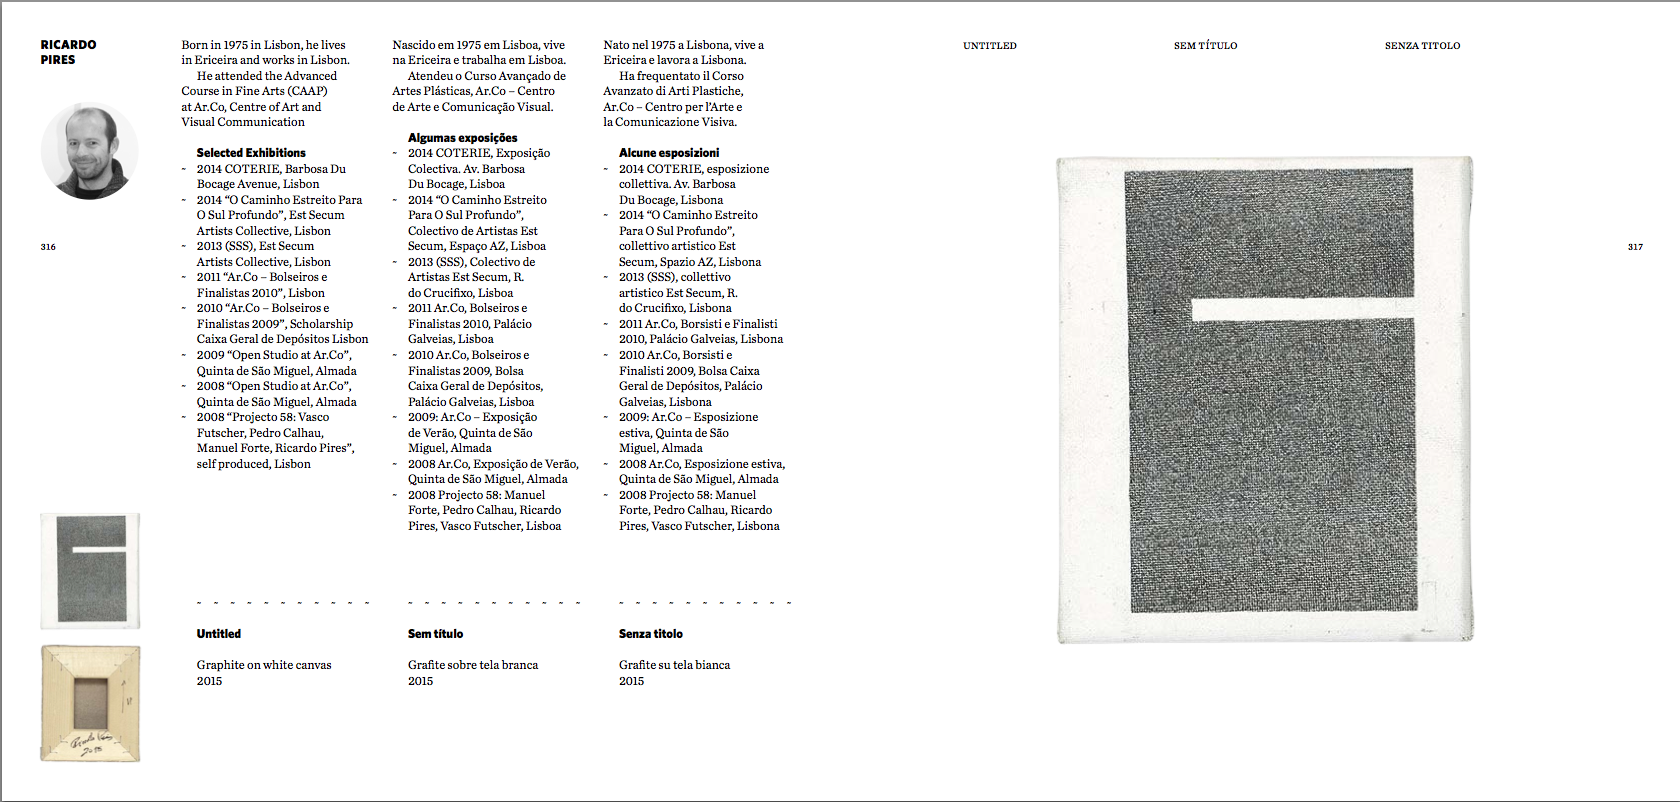 Catalogue clipping. On view: 2nd work of the Imago Mundi Project (not presented in Periplos Exhibition) -  http://www.imagomundiart.com/artworks/ricardo-pires-untitled